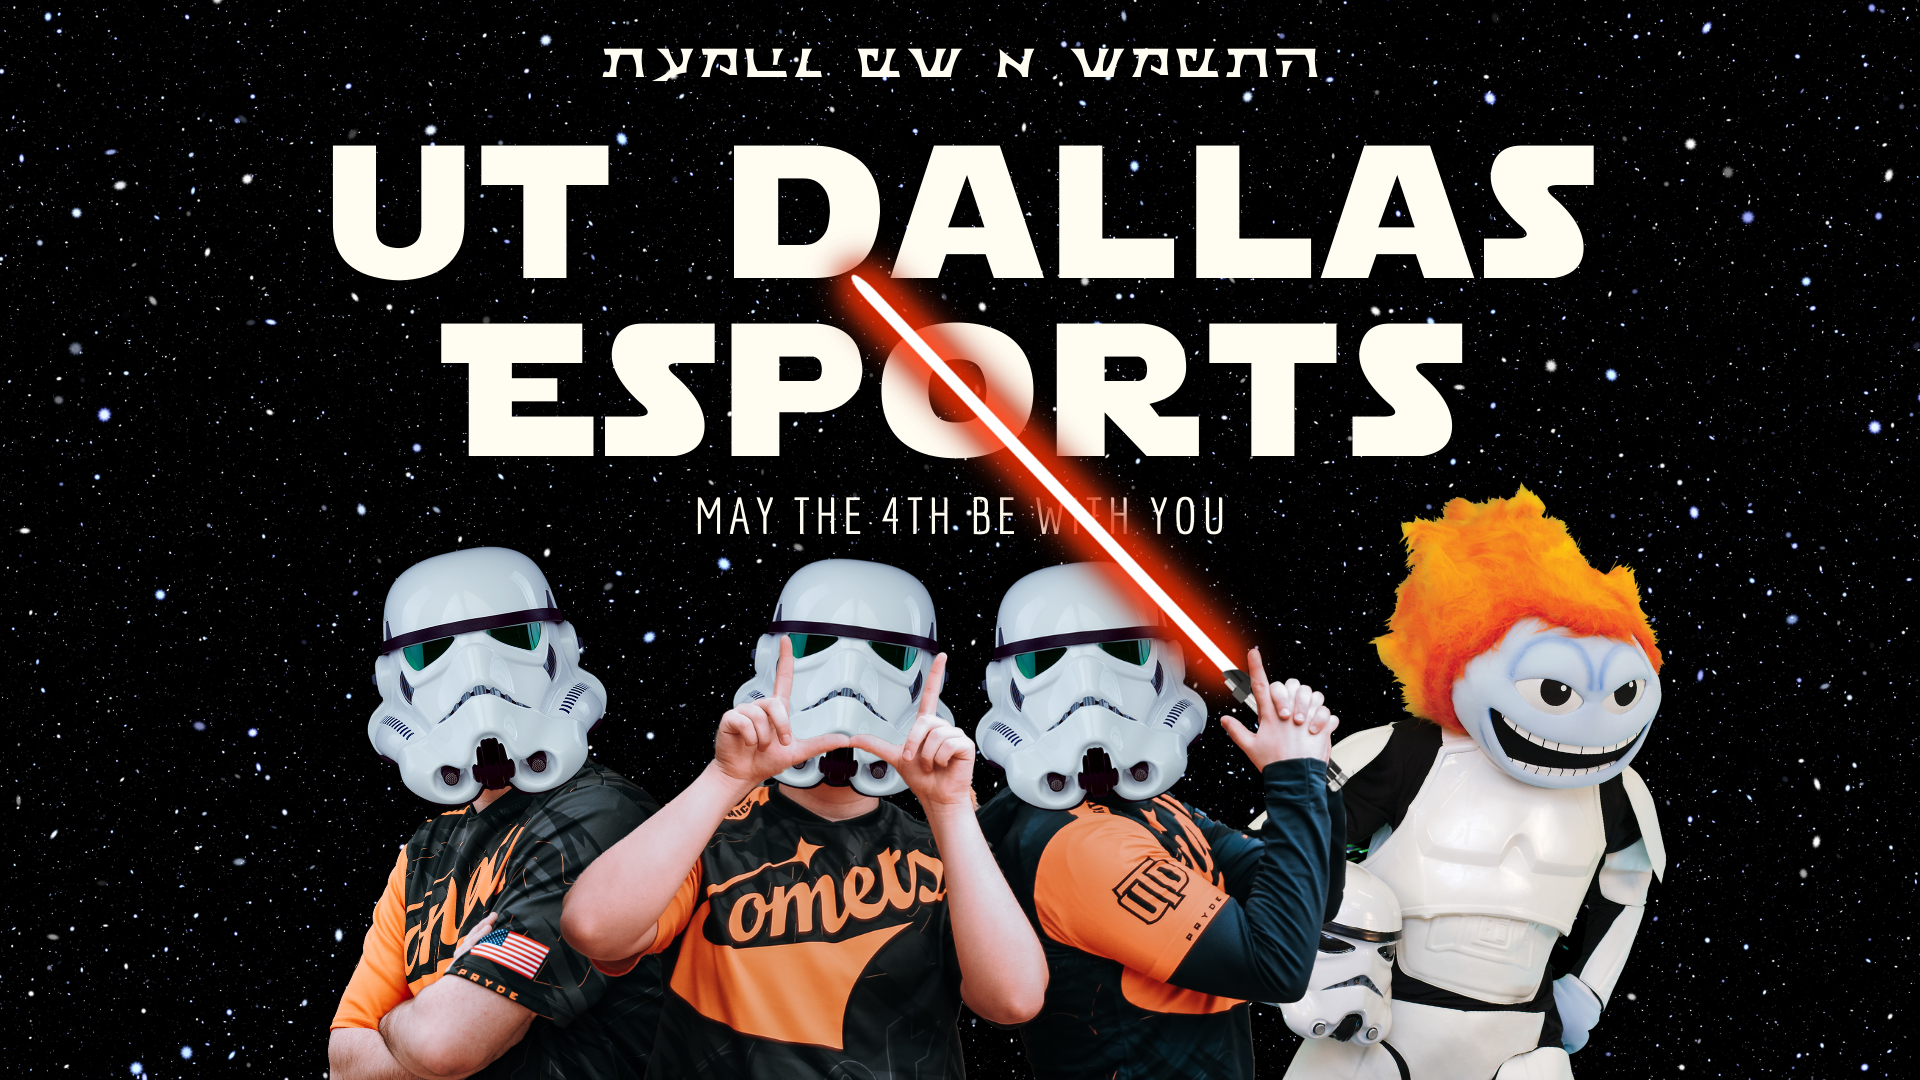 """Creating Content for """"May the 4th"""" for UT Dallas Esports"""